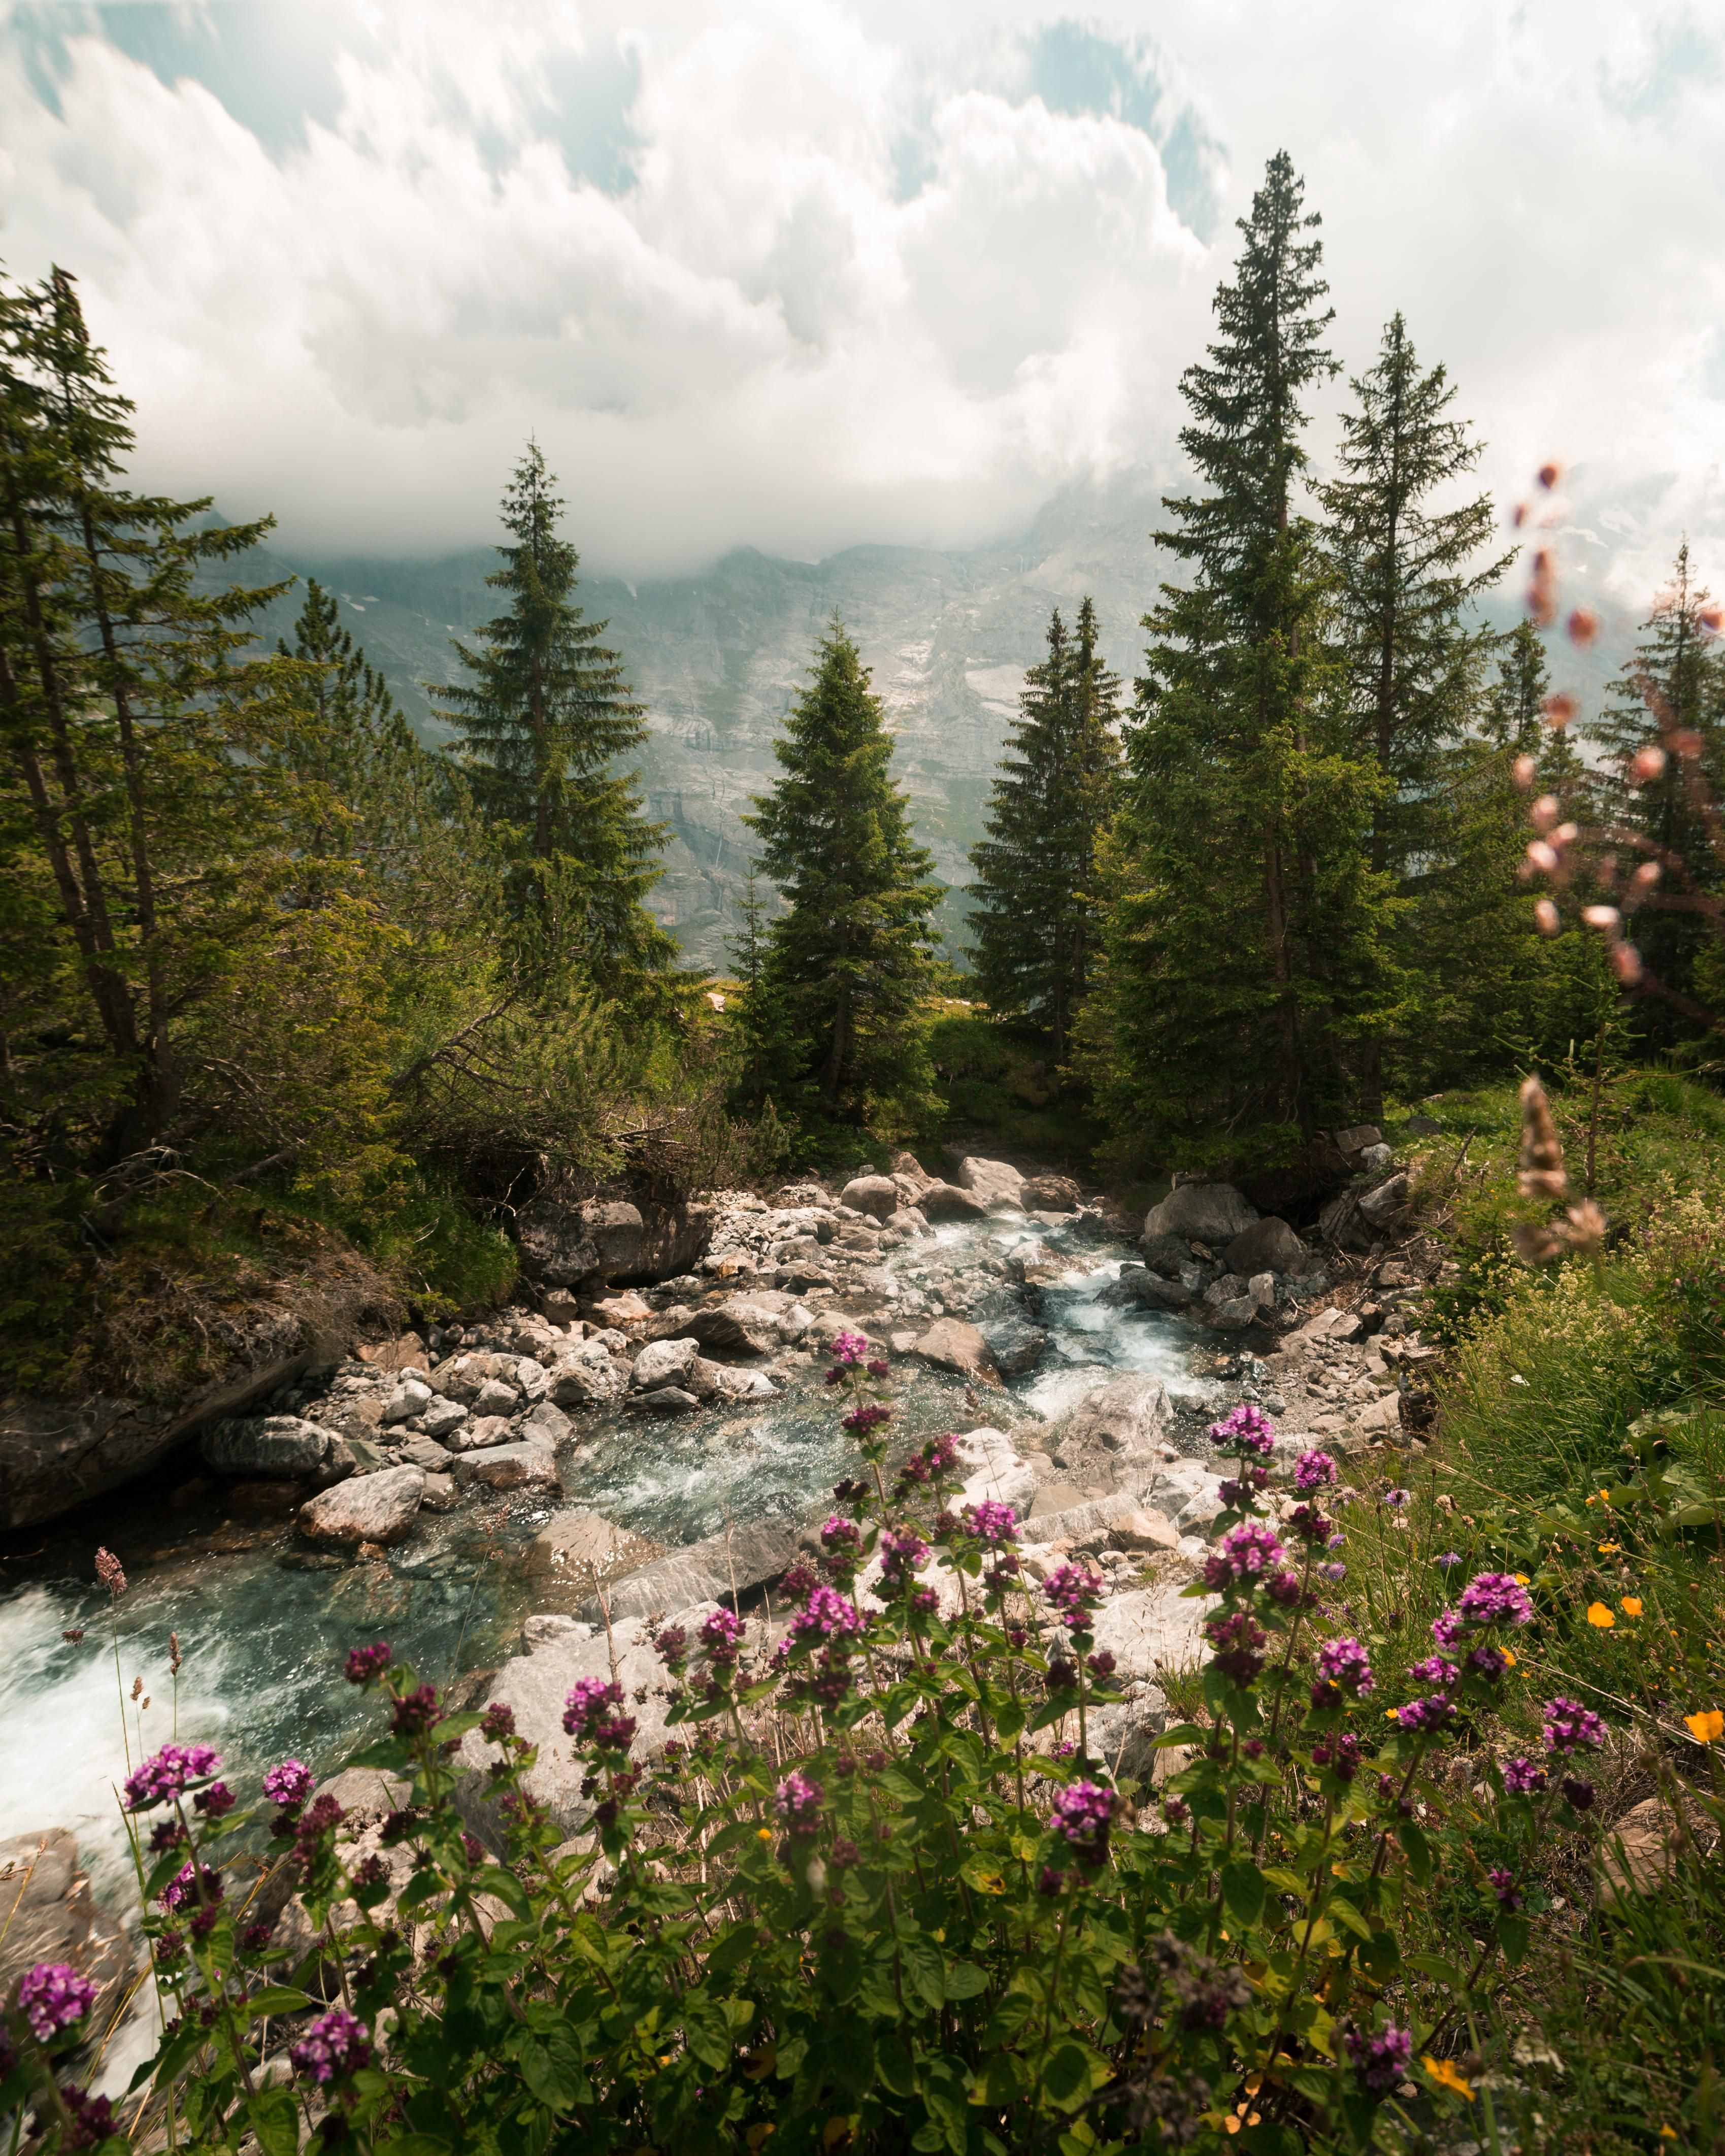 Amazing Scenery: #nature #beautiful #scenery Summer River In The Swiss Alps